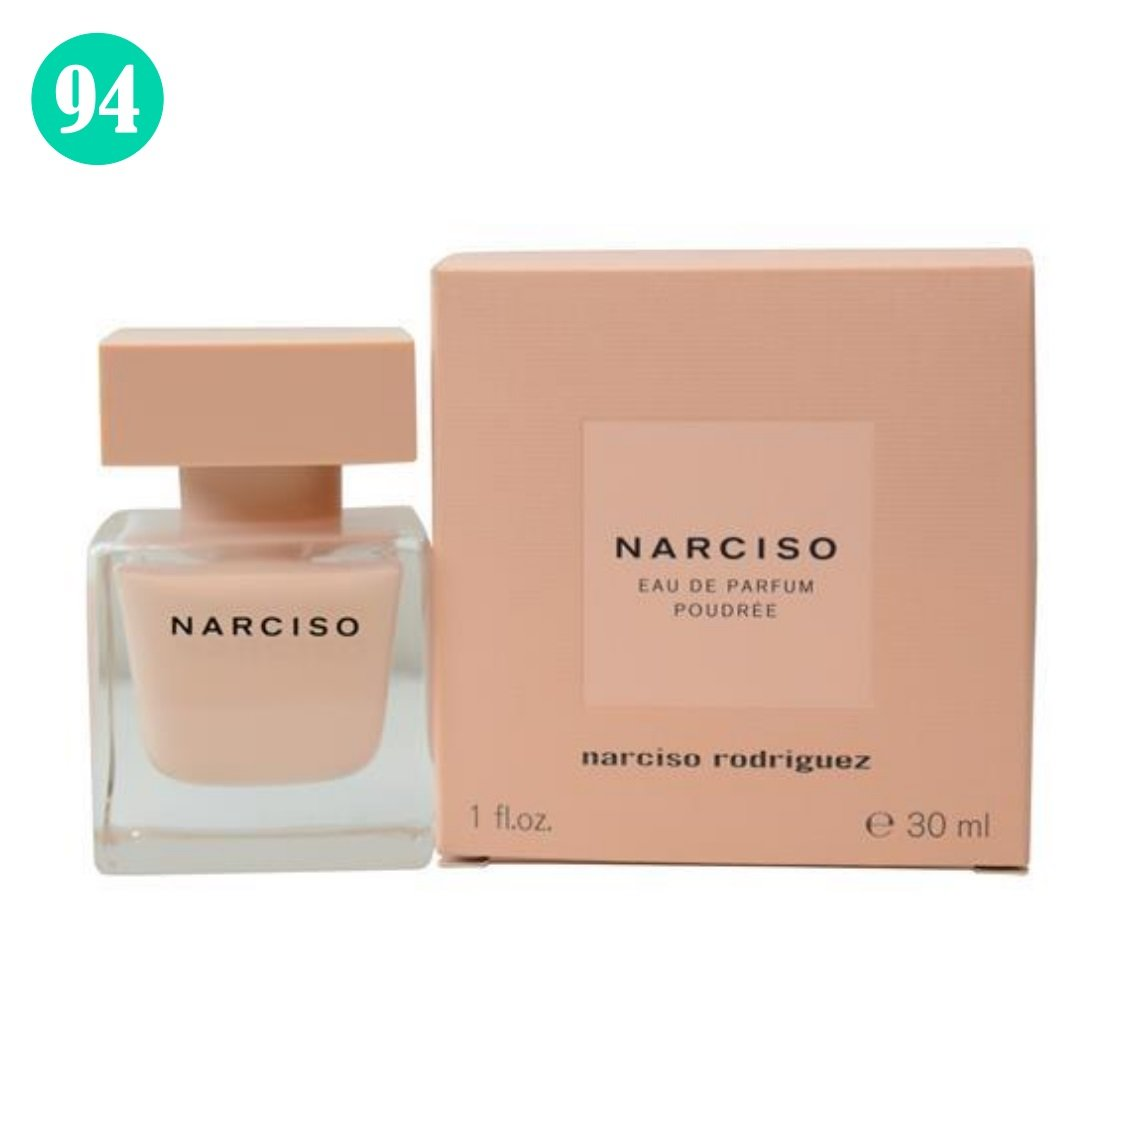 NARCISO POUDRÉE – Narciso Rodriguez donna